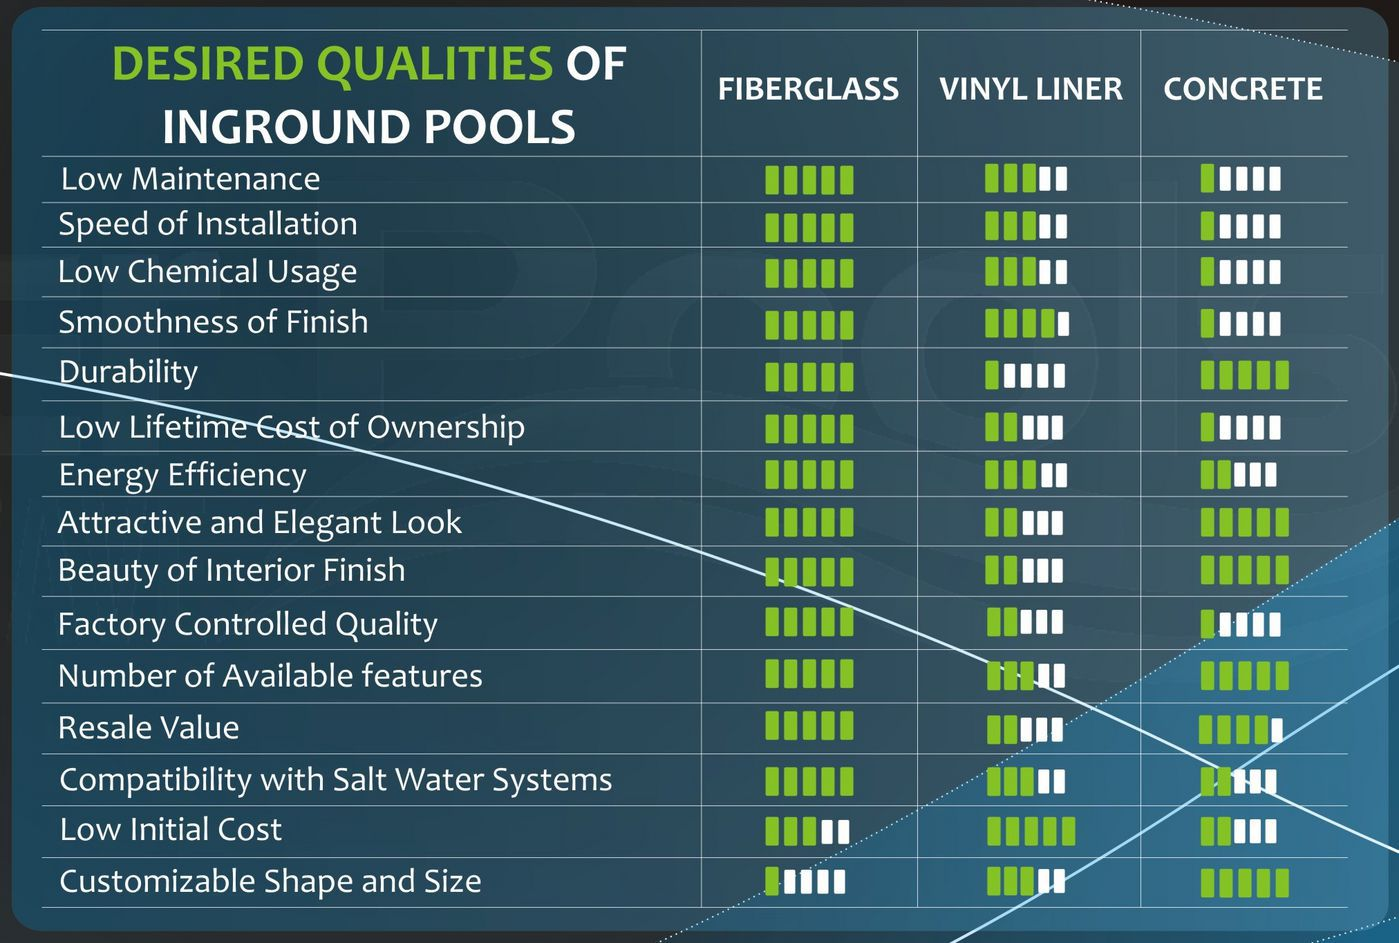 Which is the best type of pool?